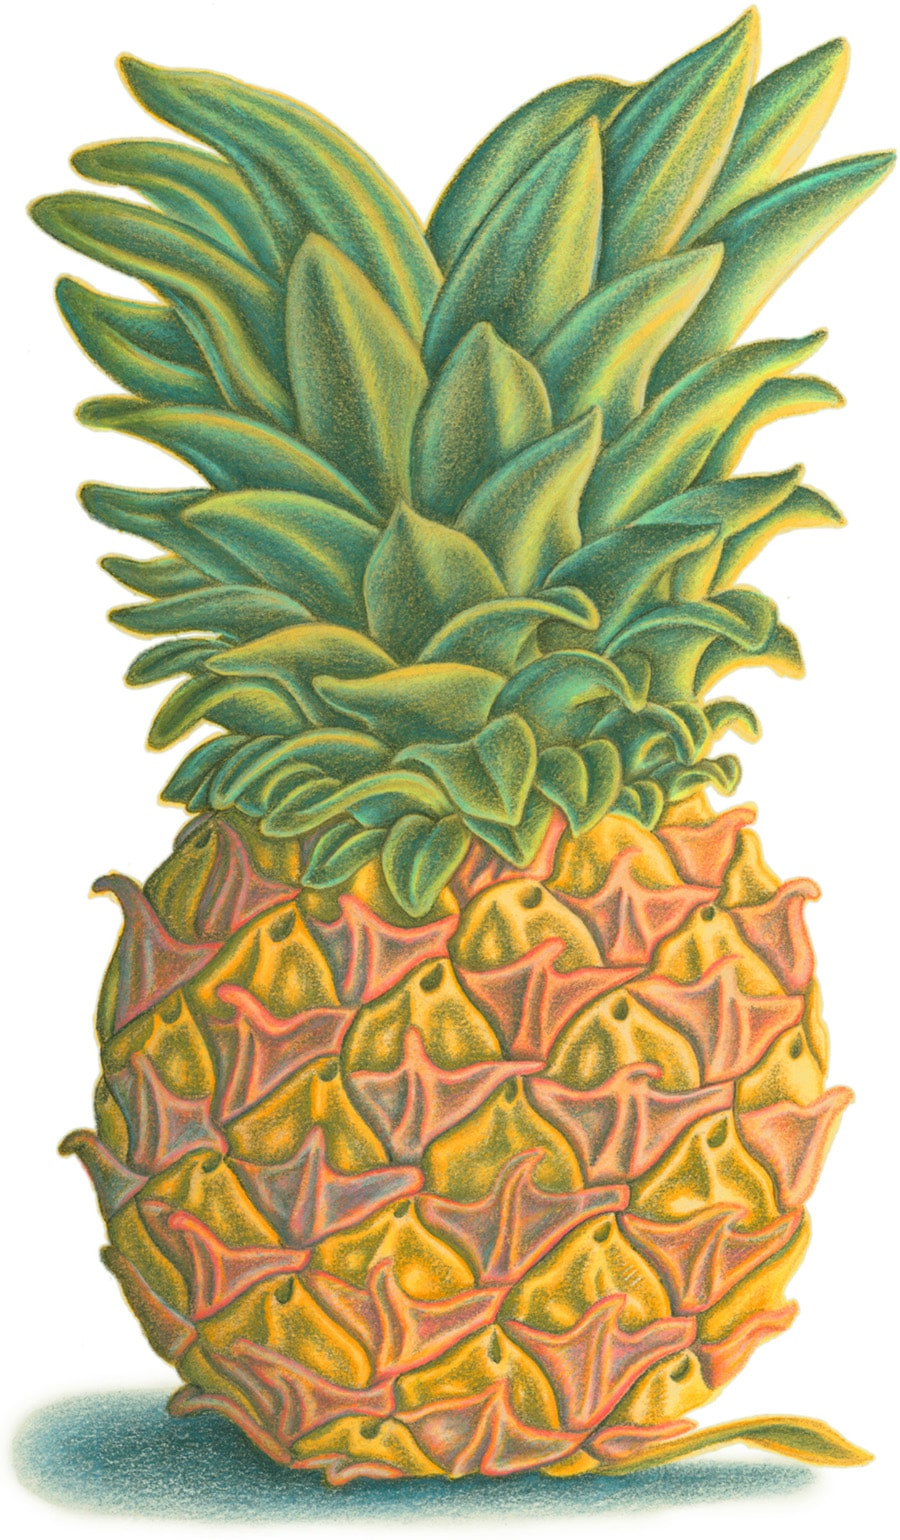 Hand Drawn Food Illustrations. Illustration 1 'The Pineapple' (Pixel dimensions available w1819 x h2956)